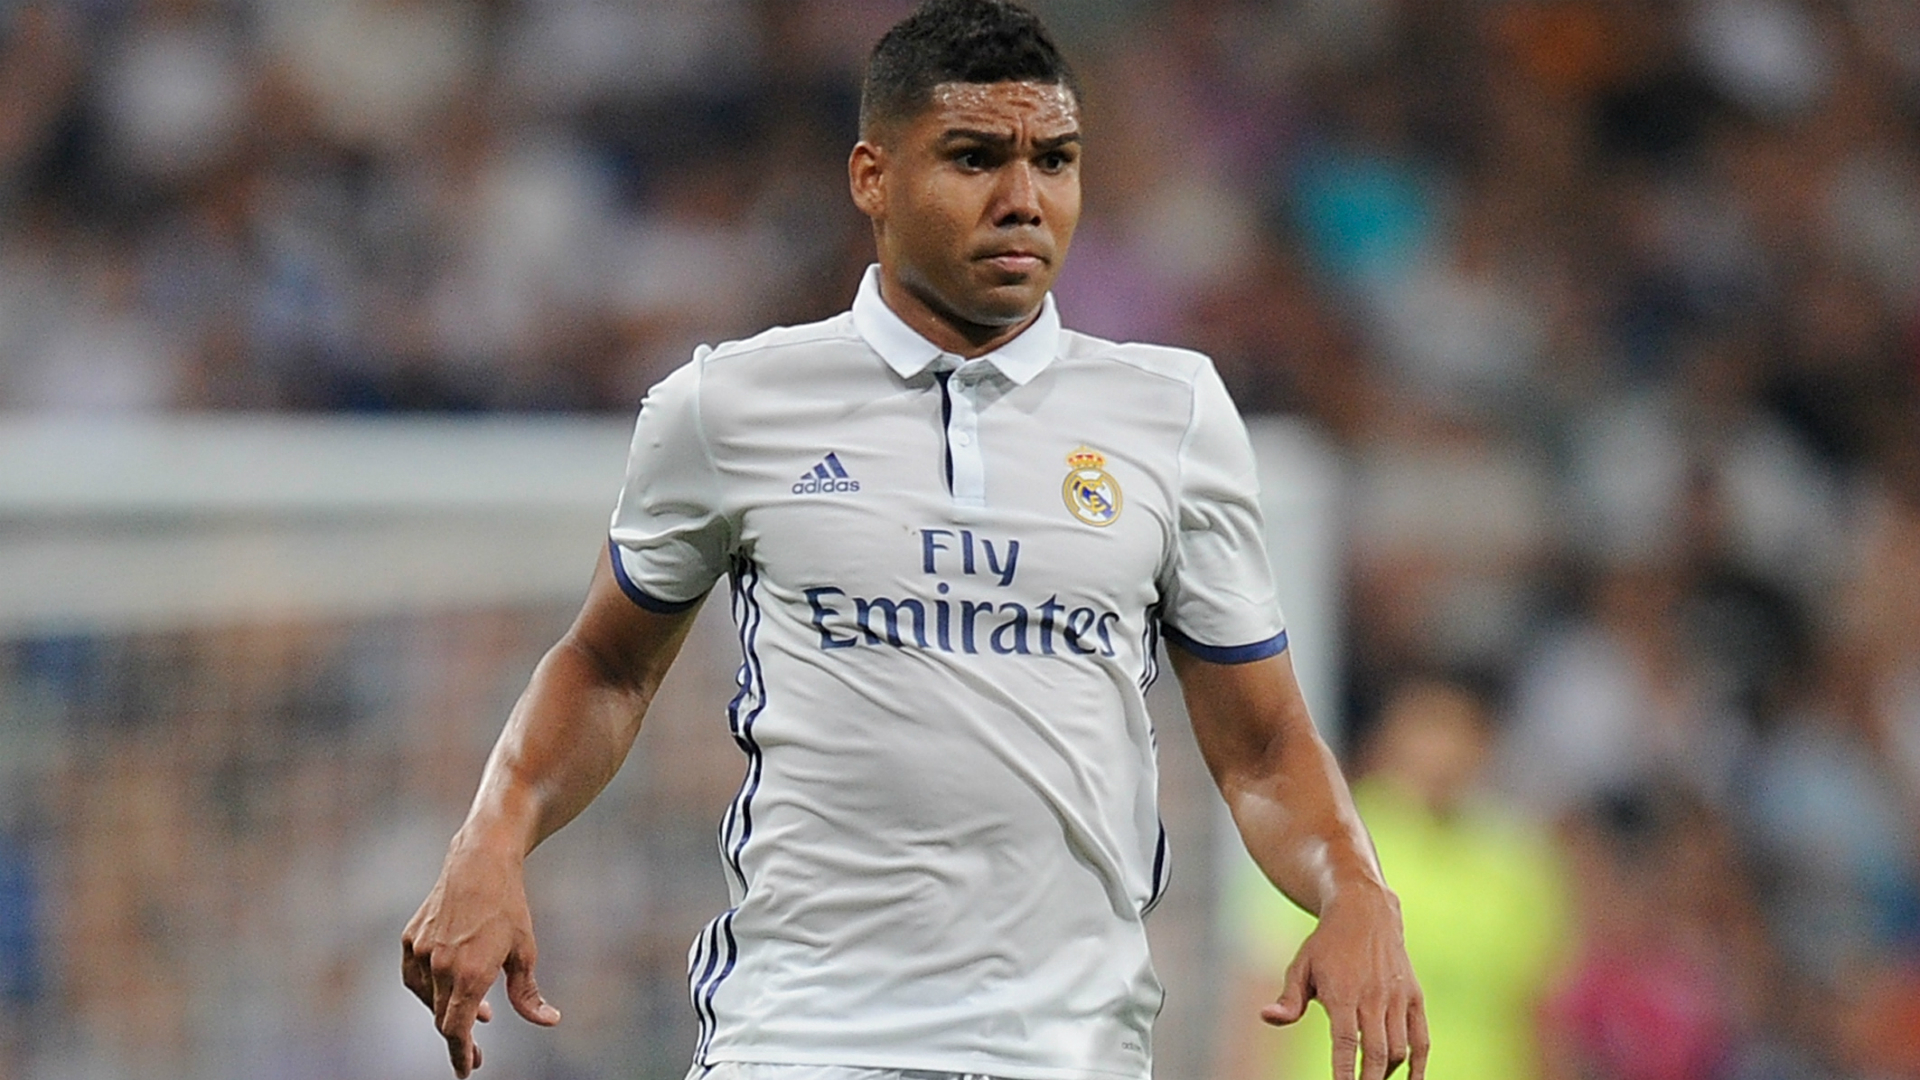 Casemiro to miss Brazil's superclasico with Argentina